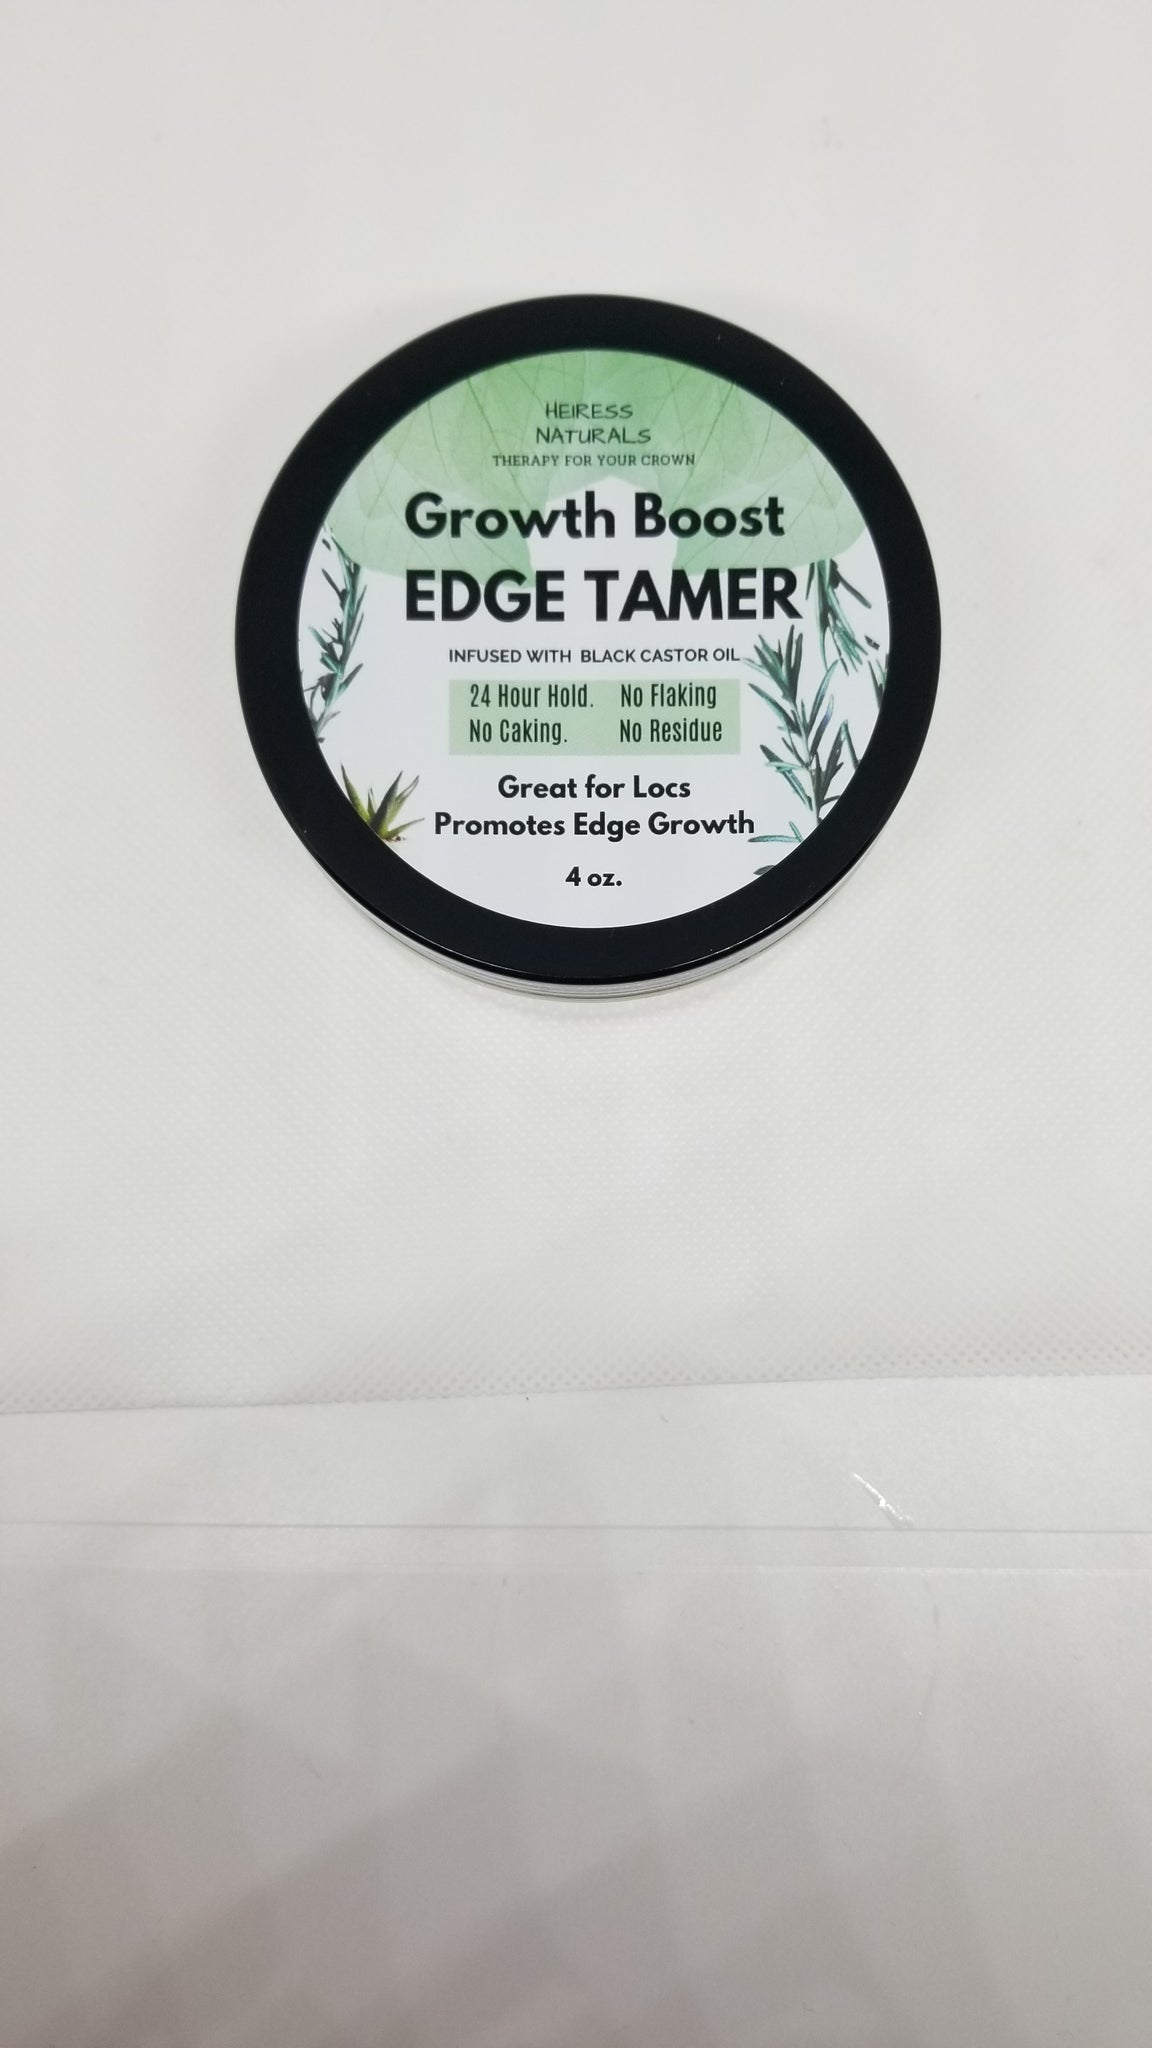 Growth Boost Edge Tamer